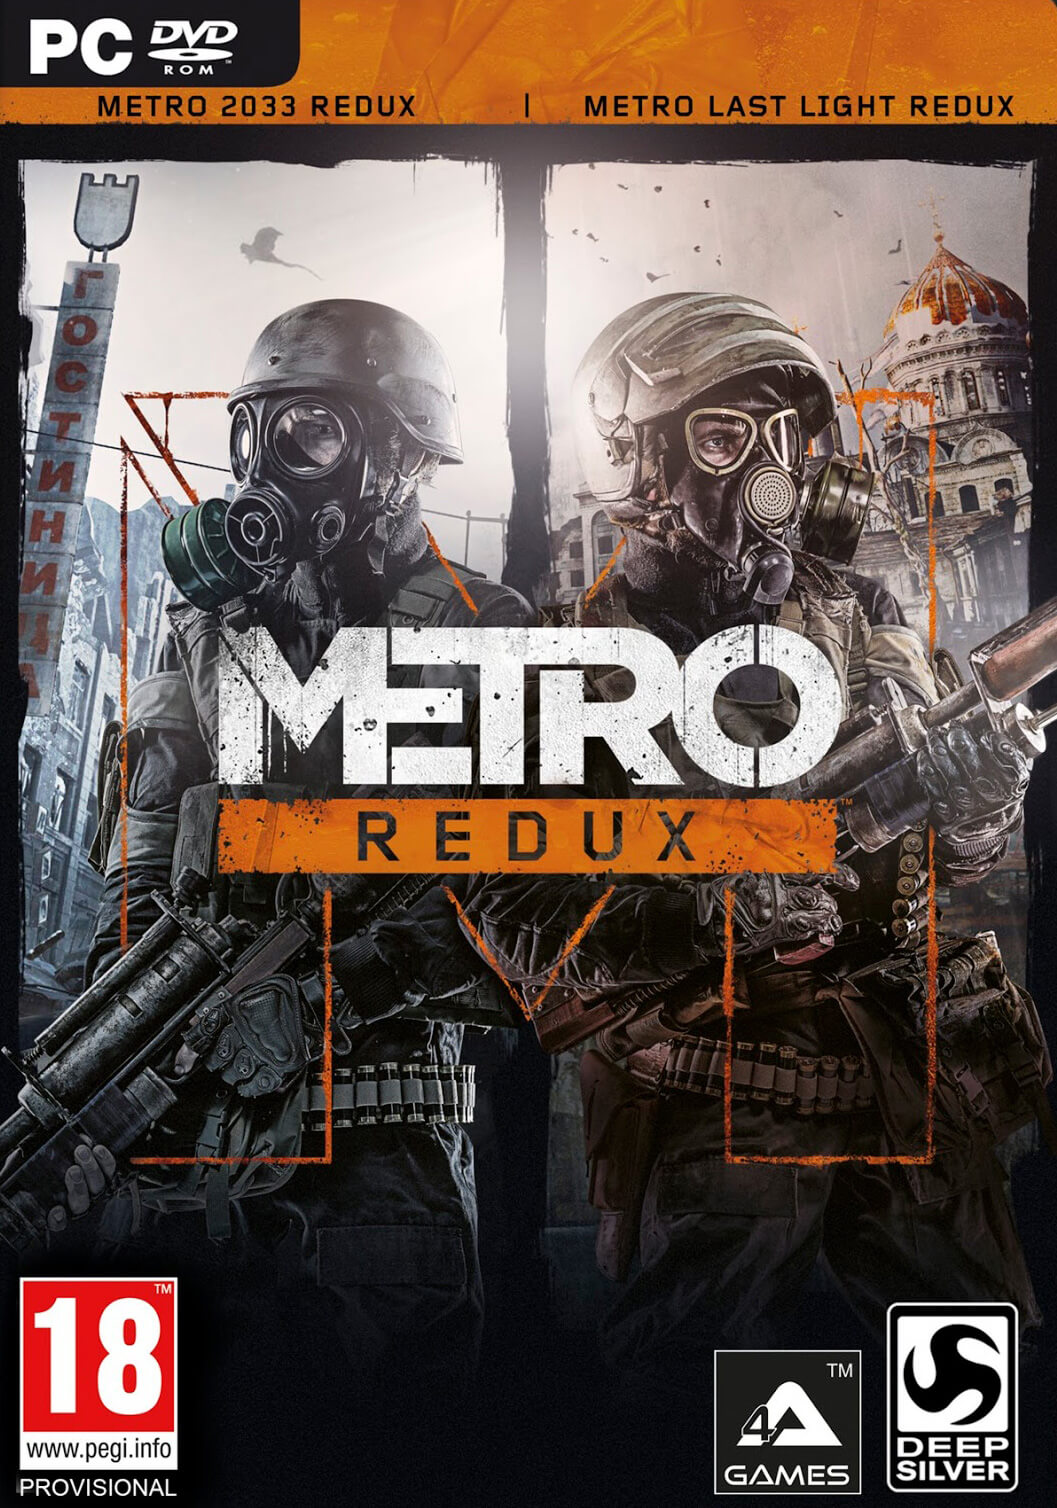 https://img5.downloadha.com/hosein/files/2019/02/Metro-Redux-Bundle-pc-cover-large.jpg